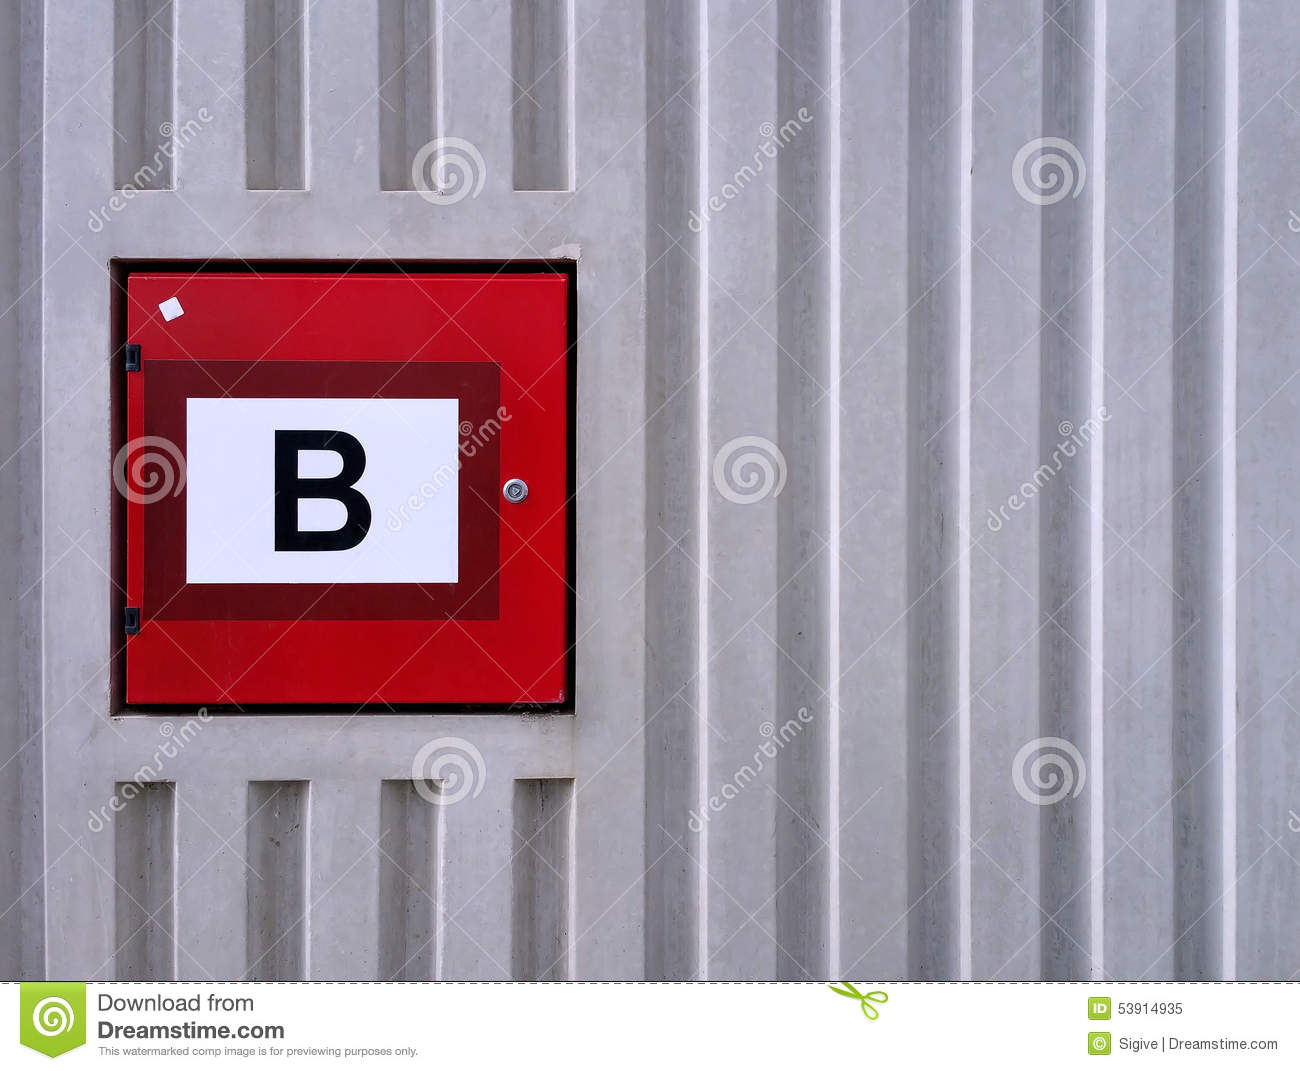 Fire Equipment Cabinet Outdoor Hydrant Fire Hose Box Stock Photos Images Pictures